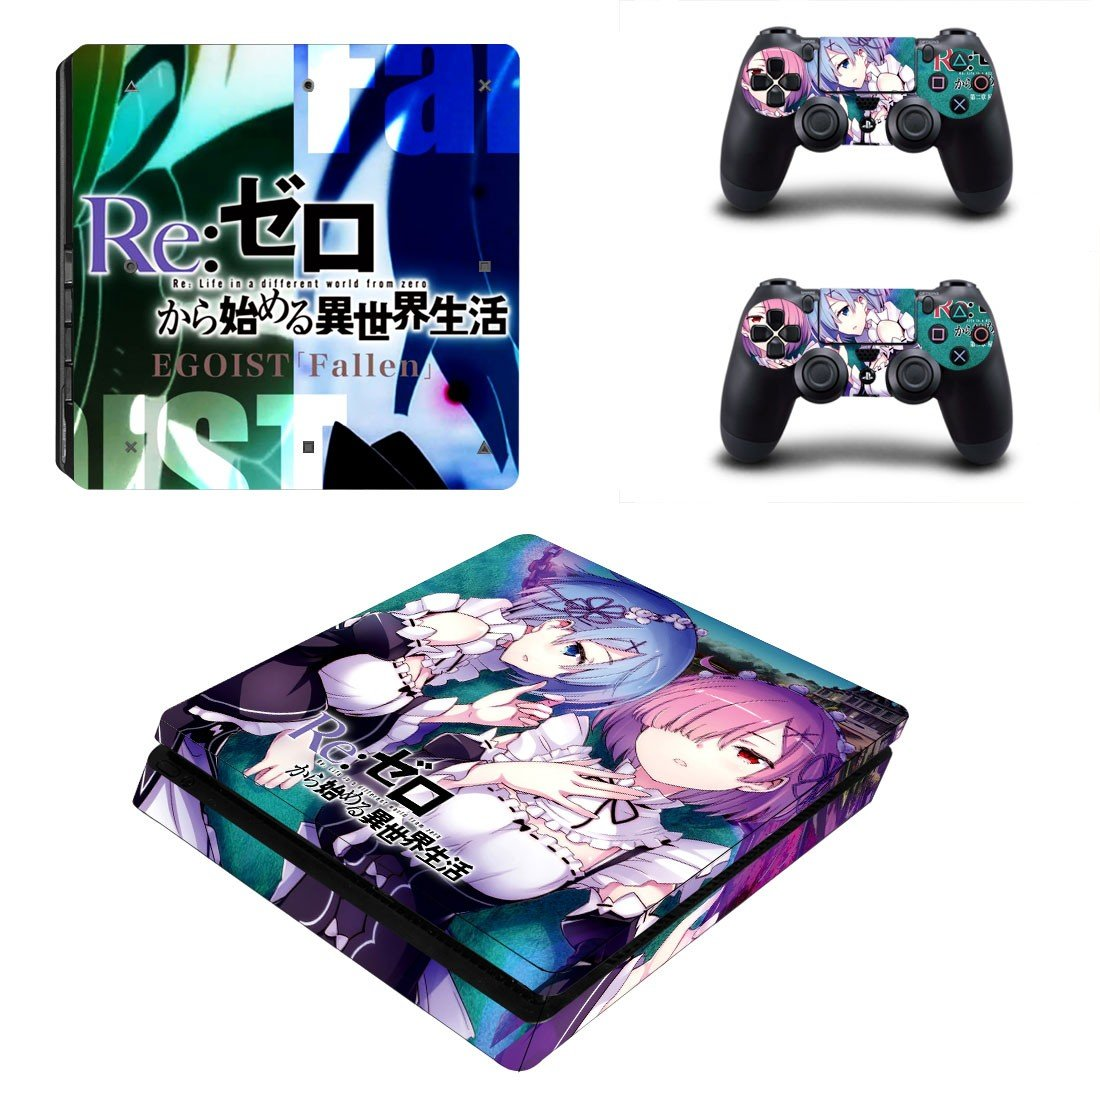 Re zero ps4 slim skin decal for console and controllers